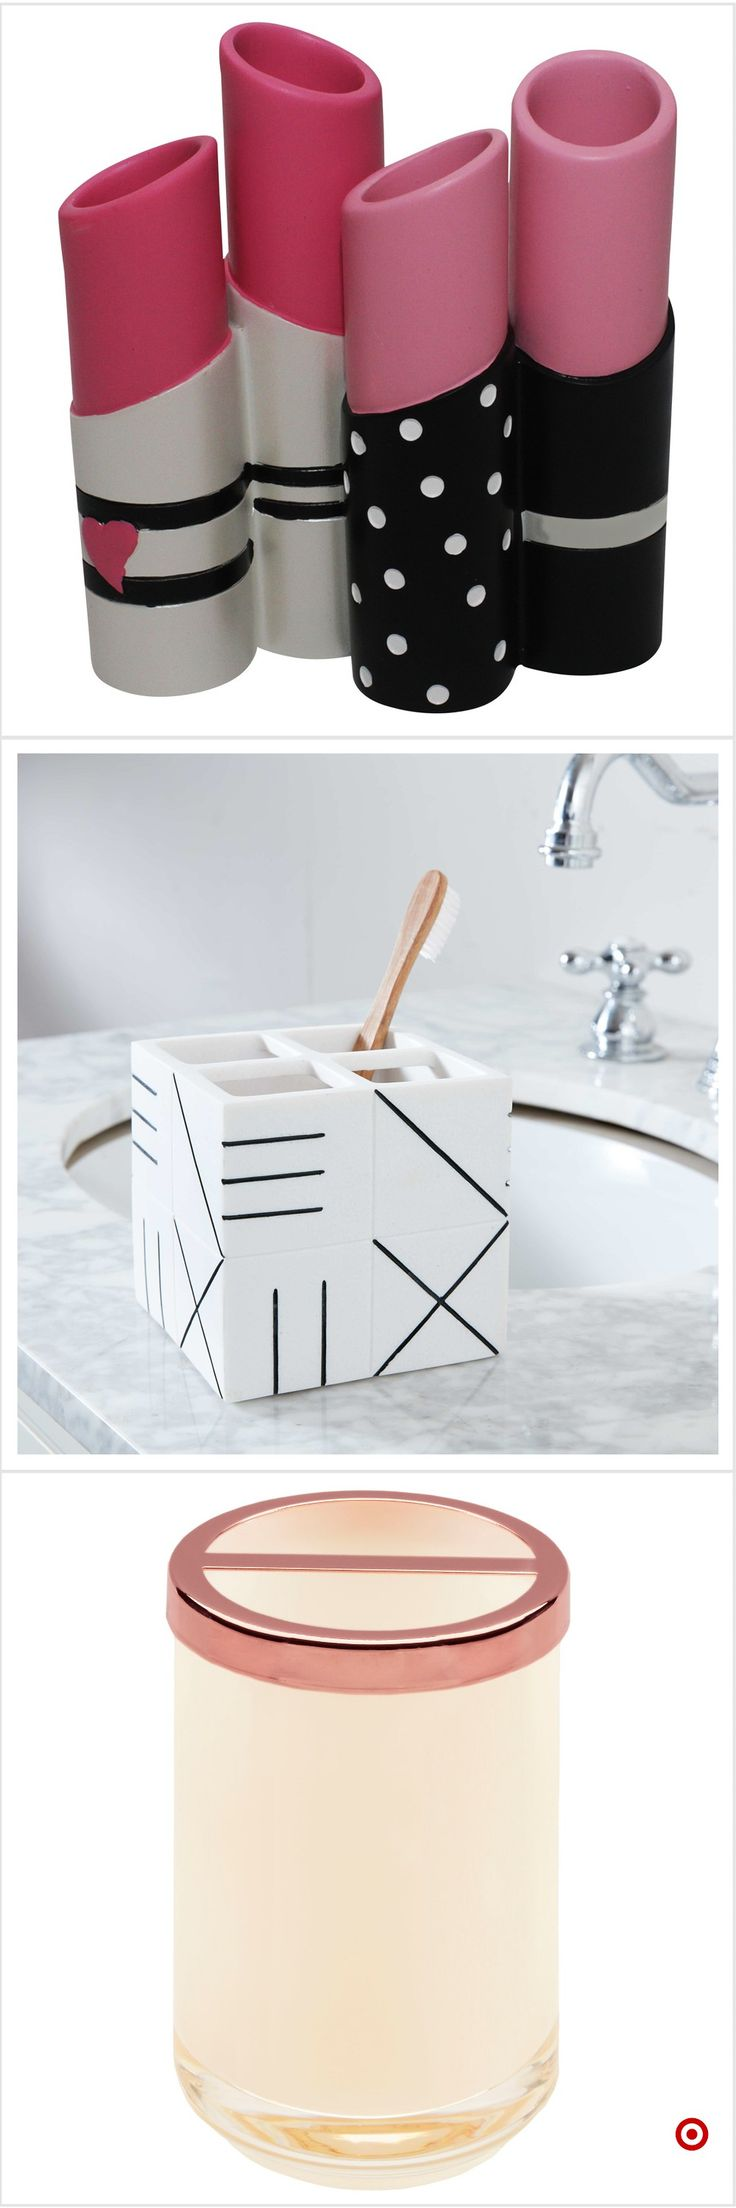 Shop Target for toothbrush holder you will love at great low prices. Free shipping on orders of $35+ or free same-day pick-up in store.